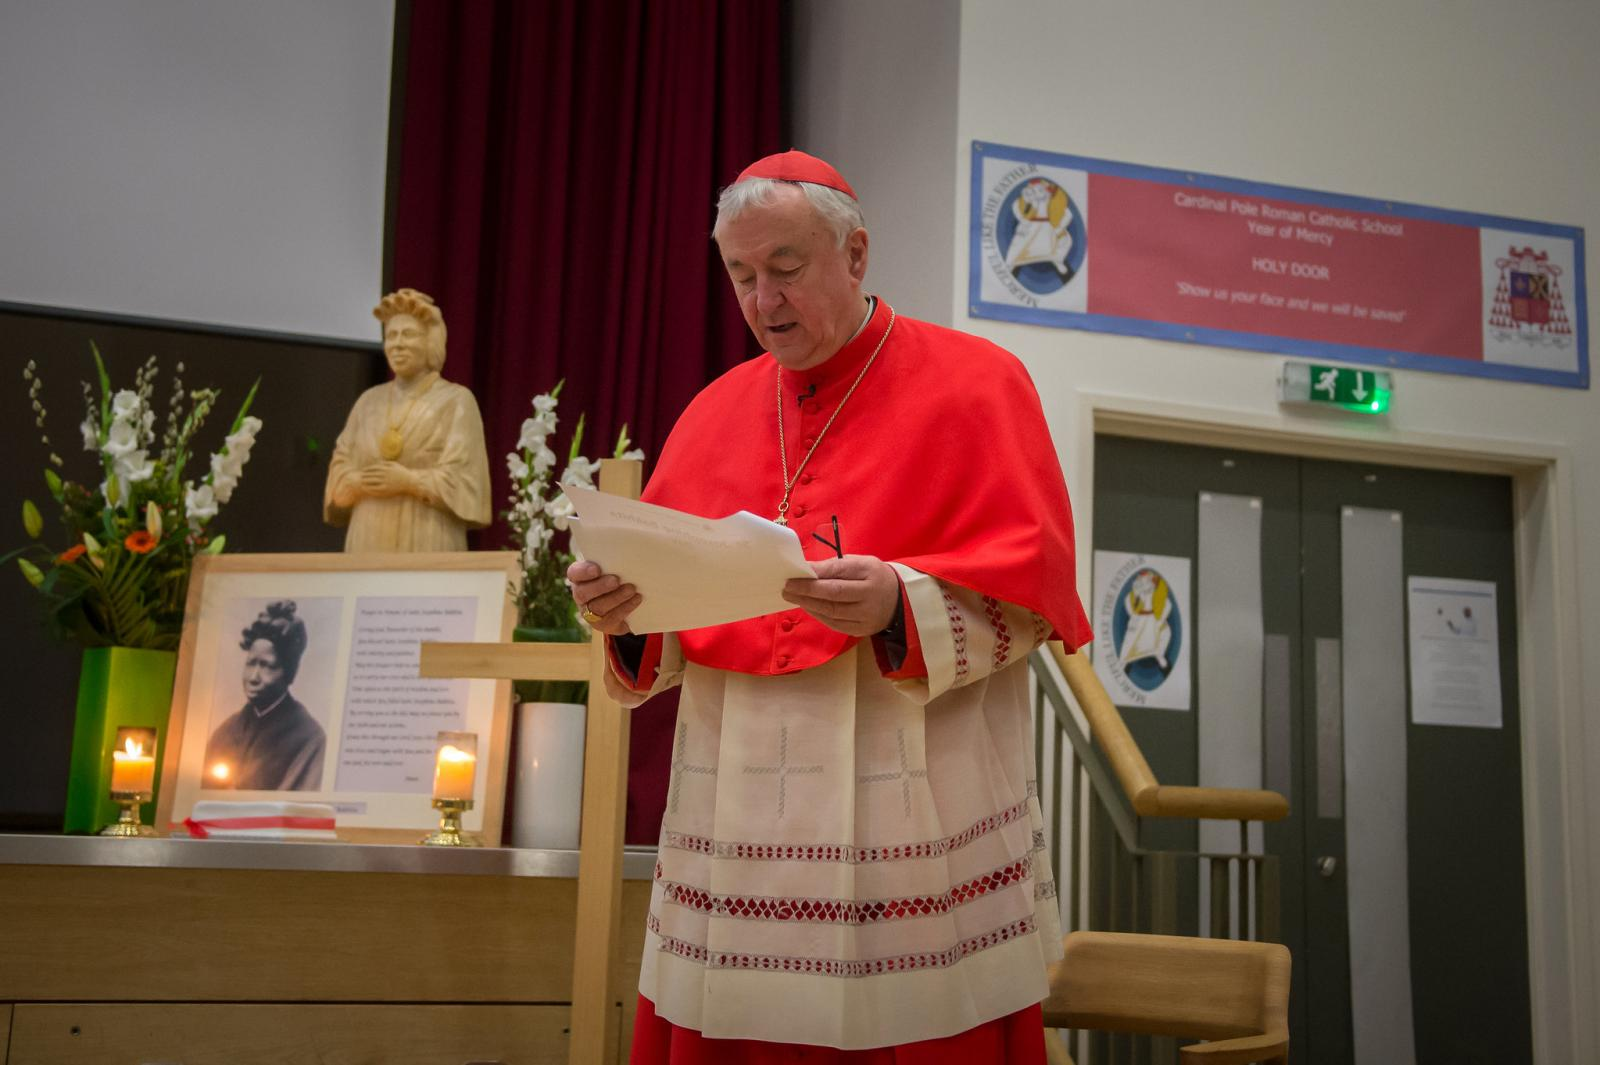 Cardinal welcomes investigation into garment-making industry - Diocese of Westminster